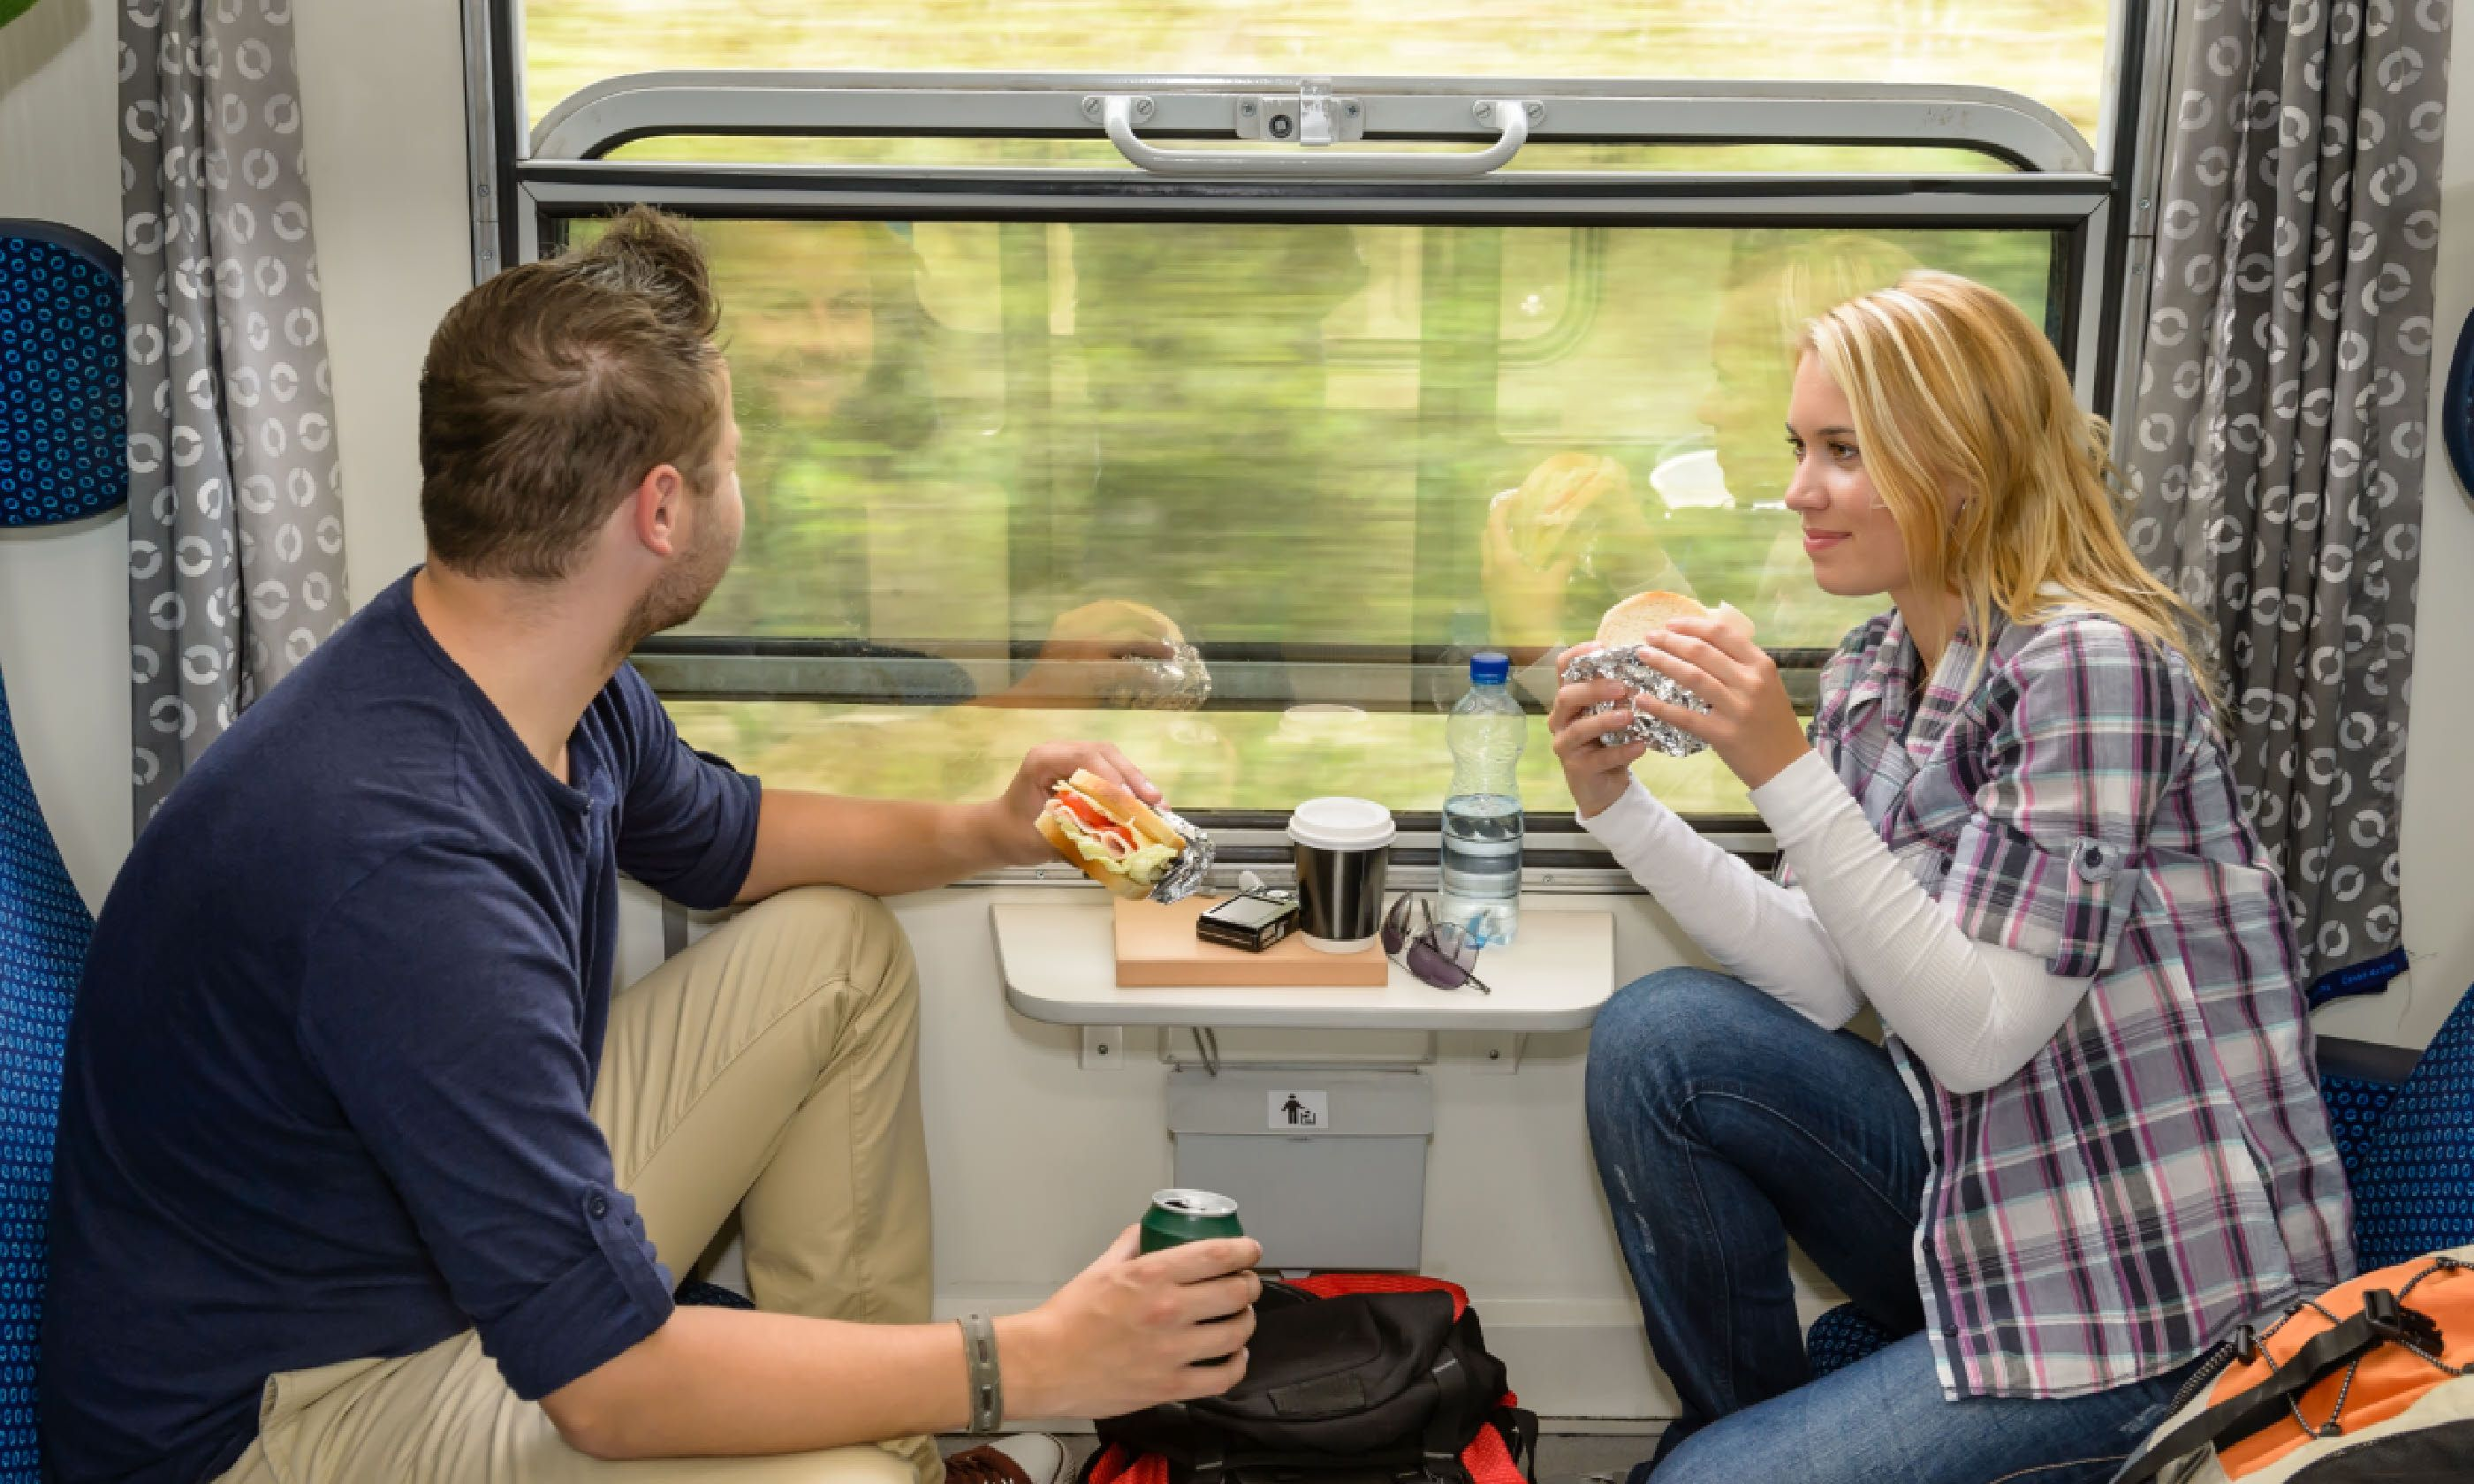 Eating a train picnic (Shutterstock)